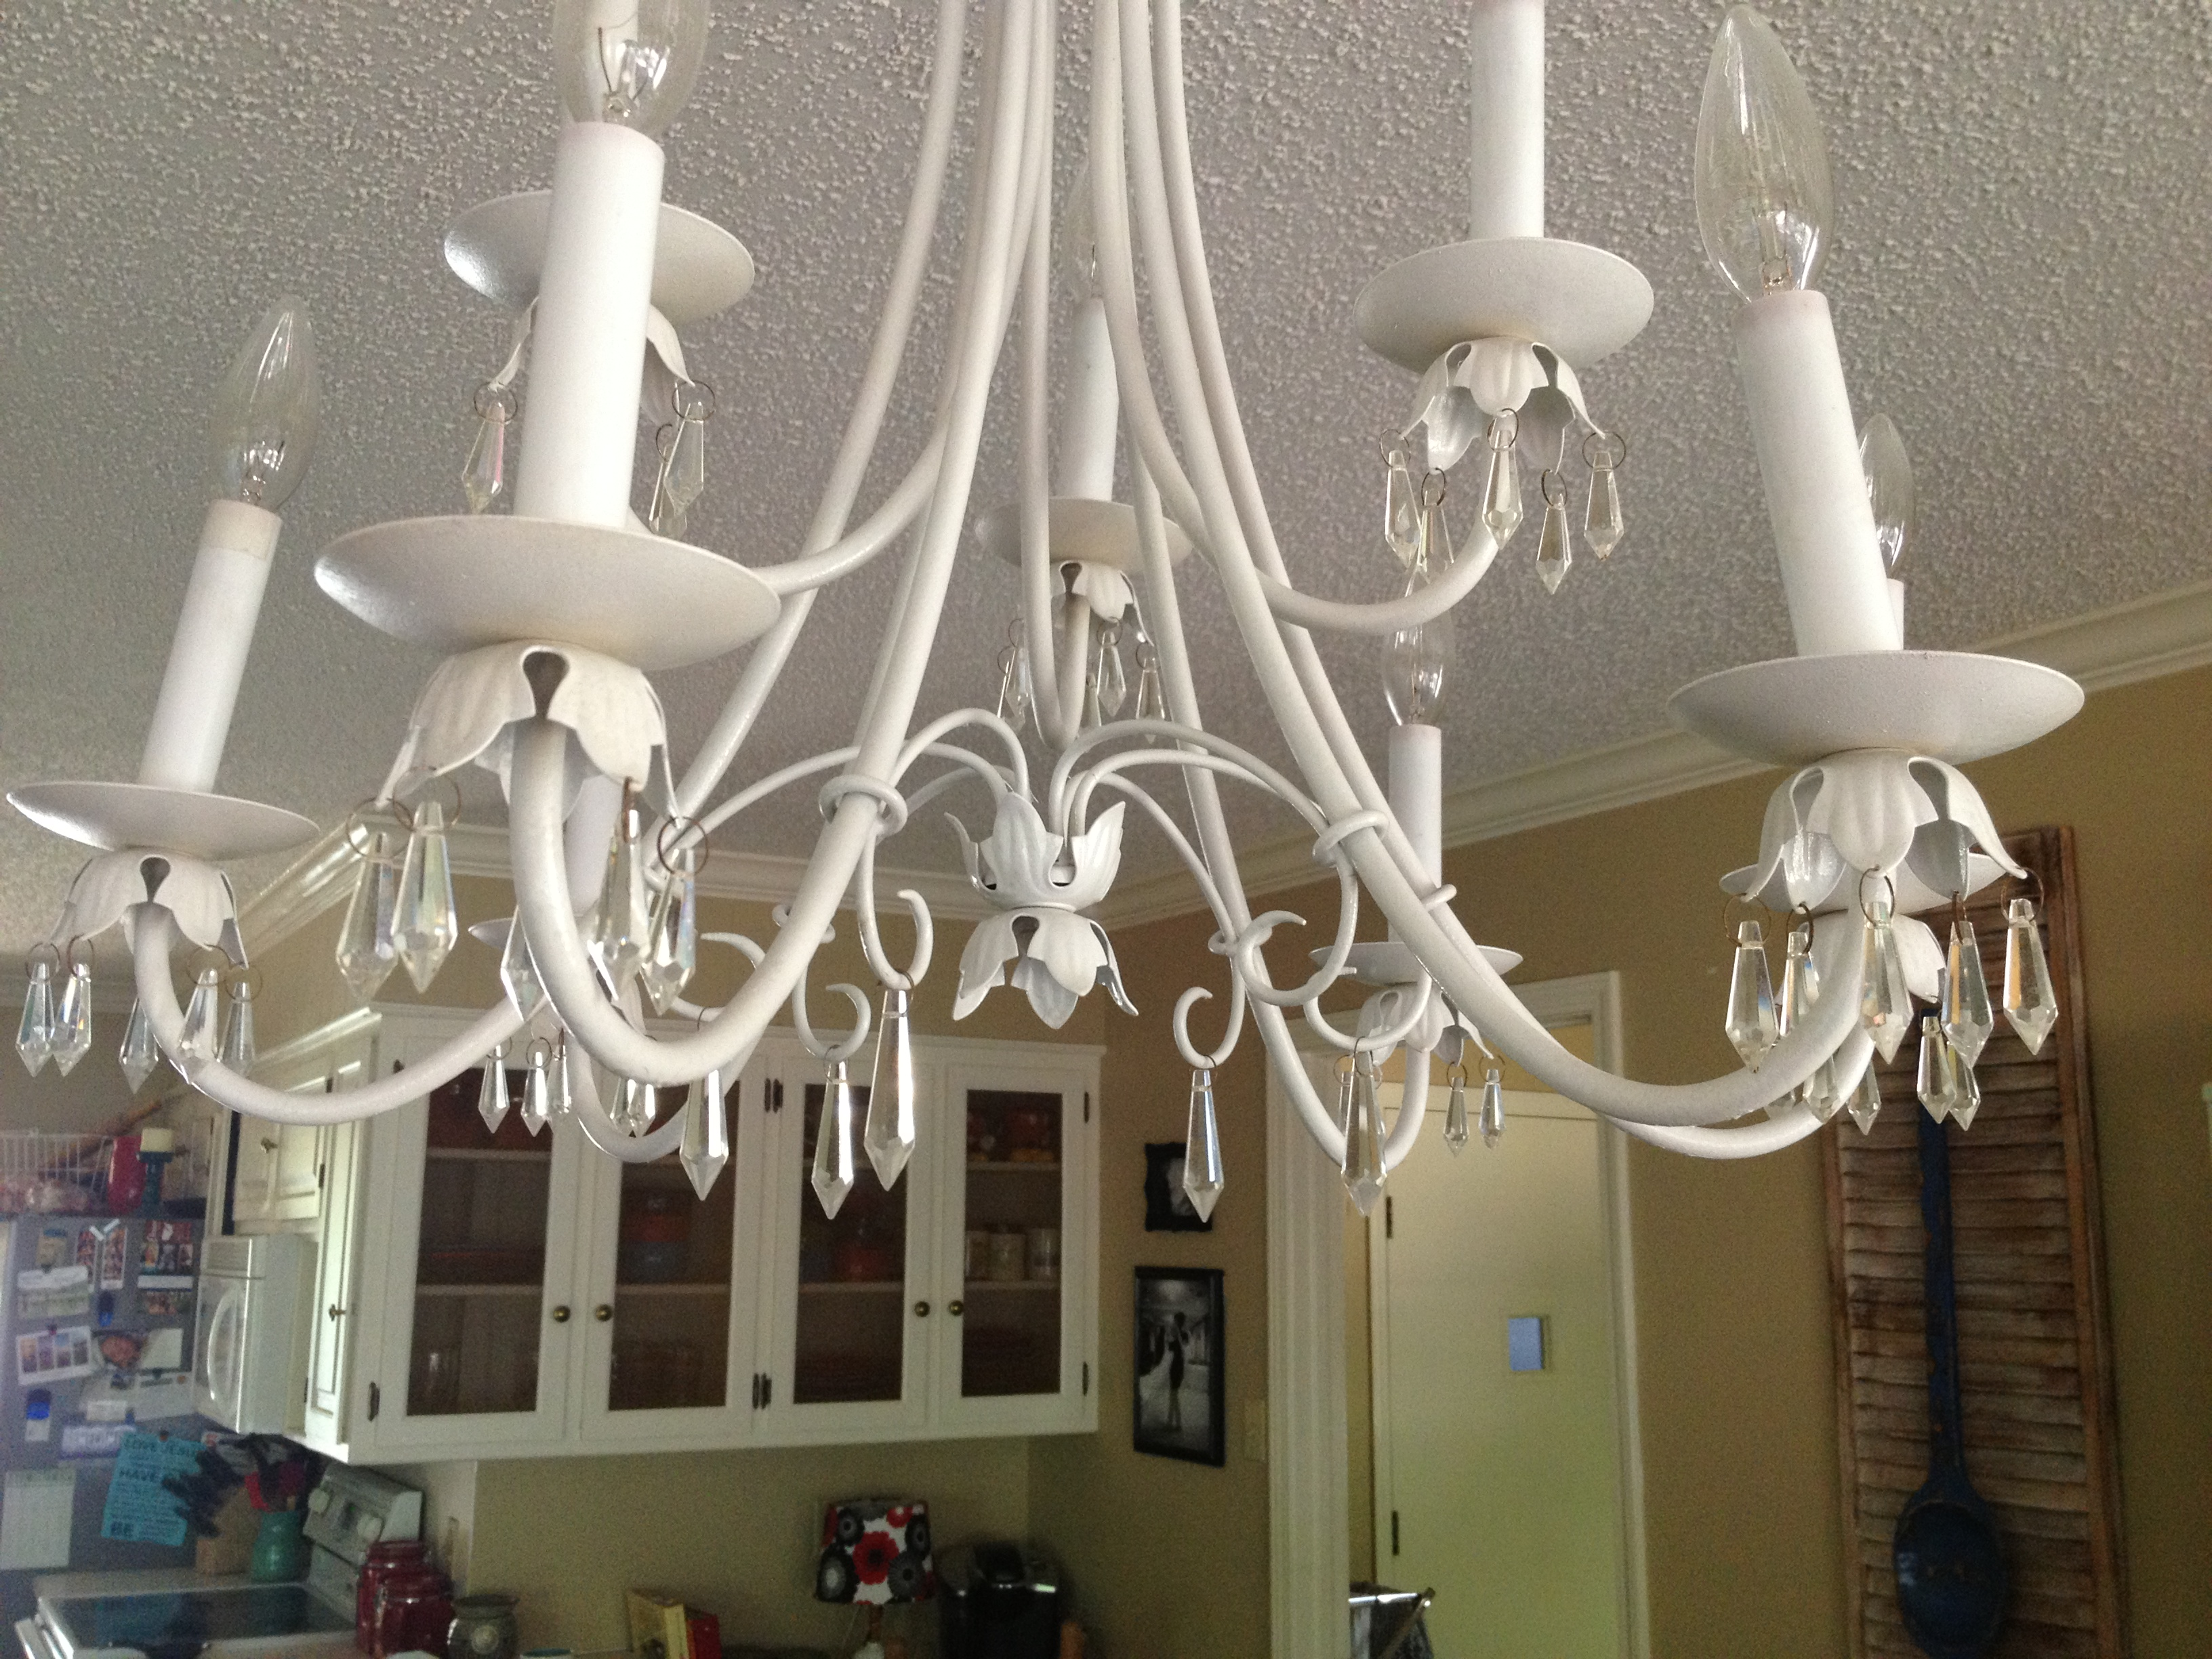 Vintage chandelier makeover all things new interiors photo 2 40 photo 4 33 aloadofball Images